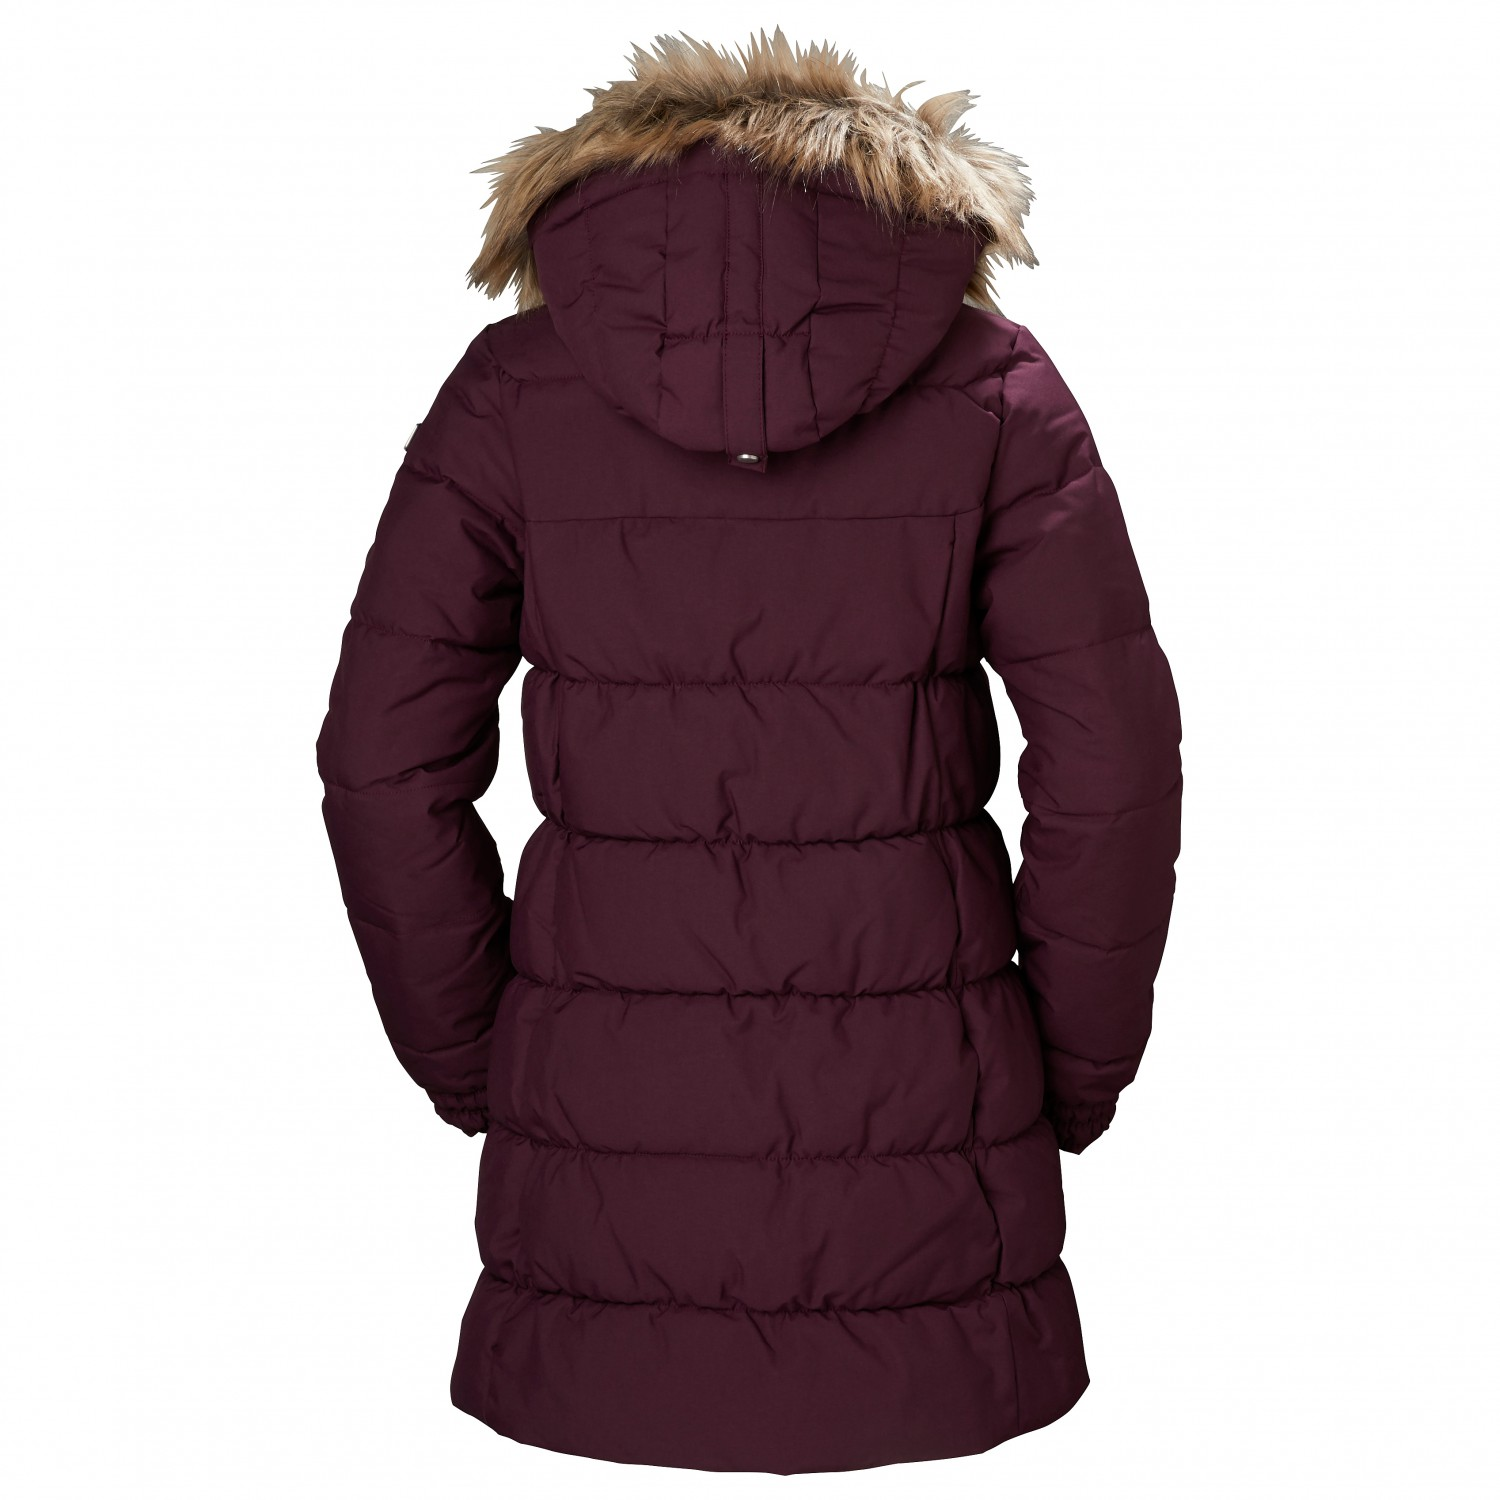 c74bbdfa58 Helly Hansen Blume Puffy Parka - Coat Women's | Free UK Delivery ...